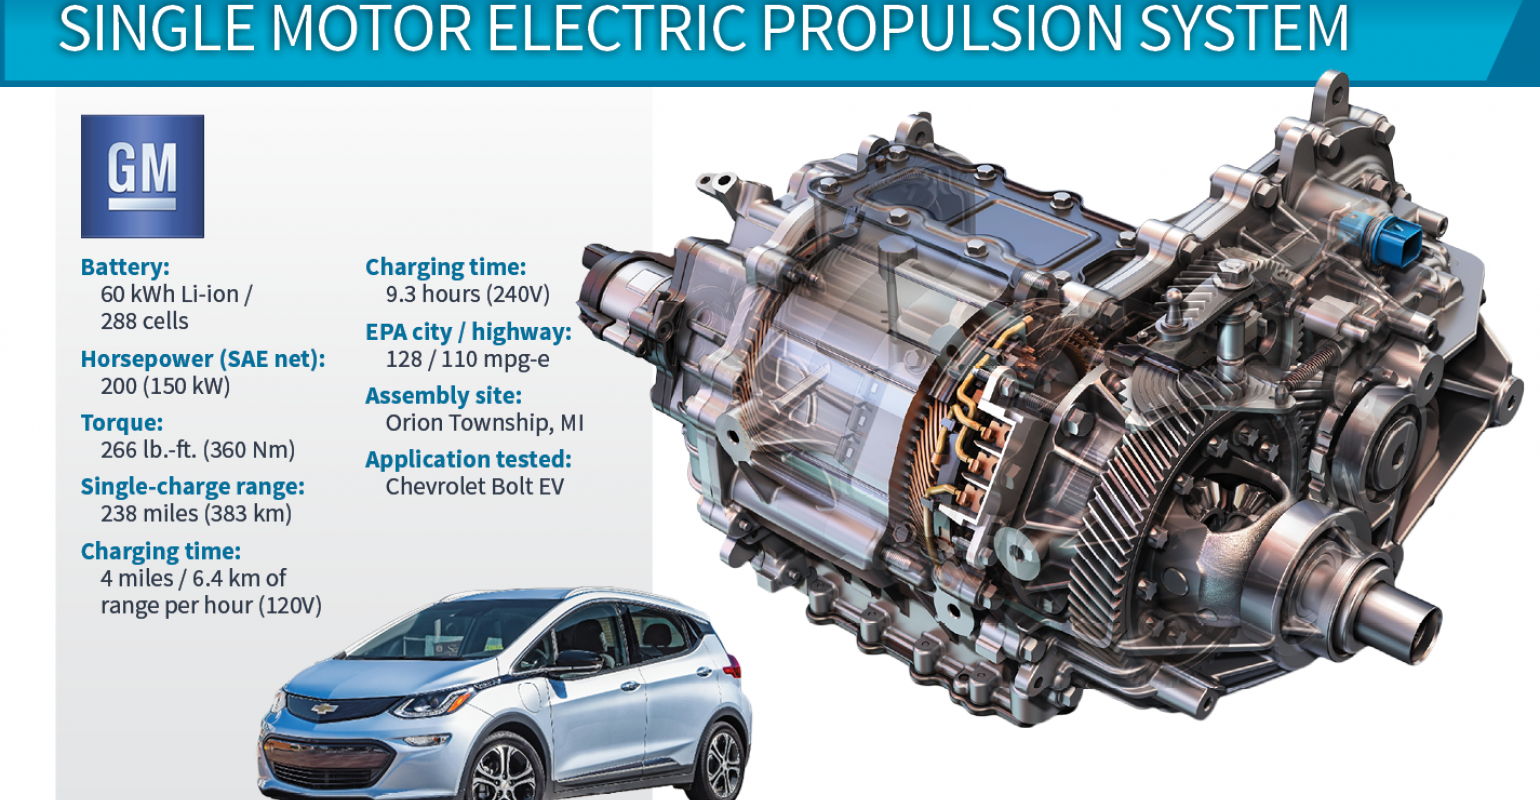 2018 Winner Chevrolet Bolt Ev 150 Kw Electric Propulsion System